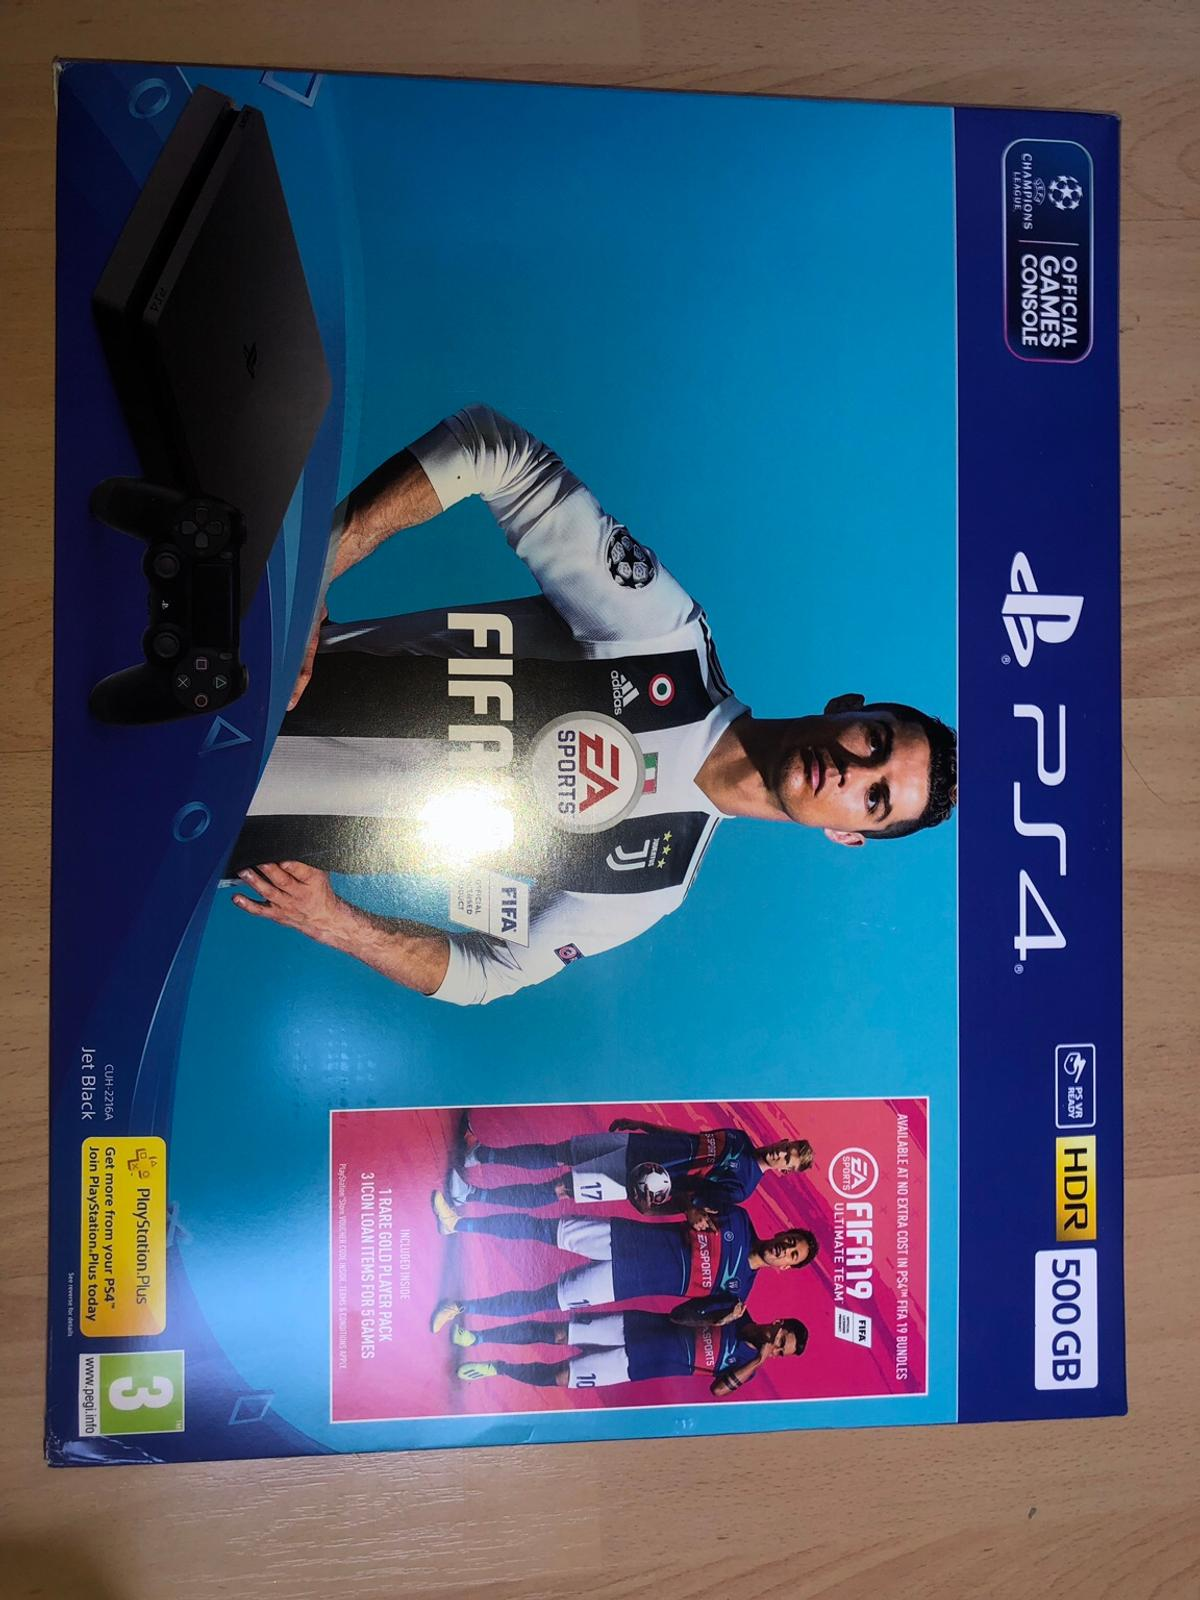 BRAND NEW PS4 + FIFA 19 BUNDLE in LE7 Charnwood für £ 240,00